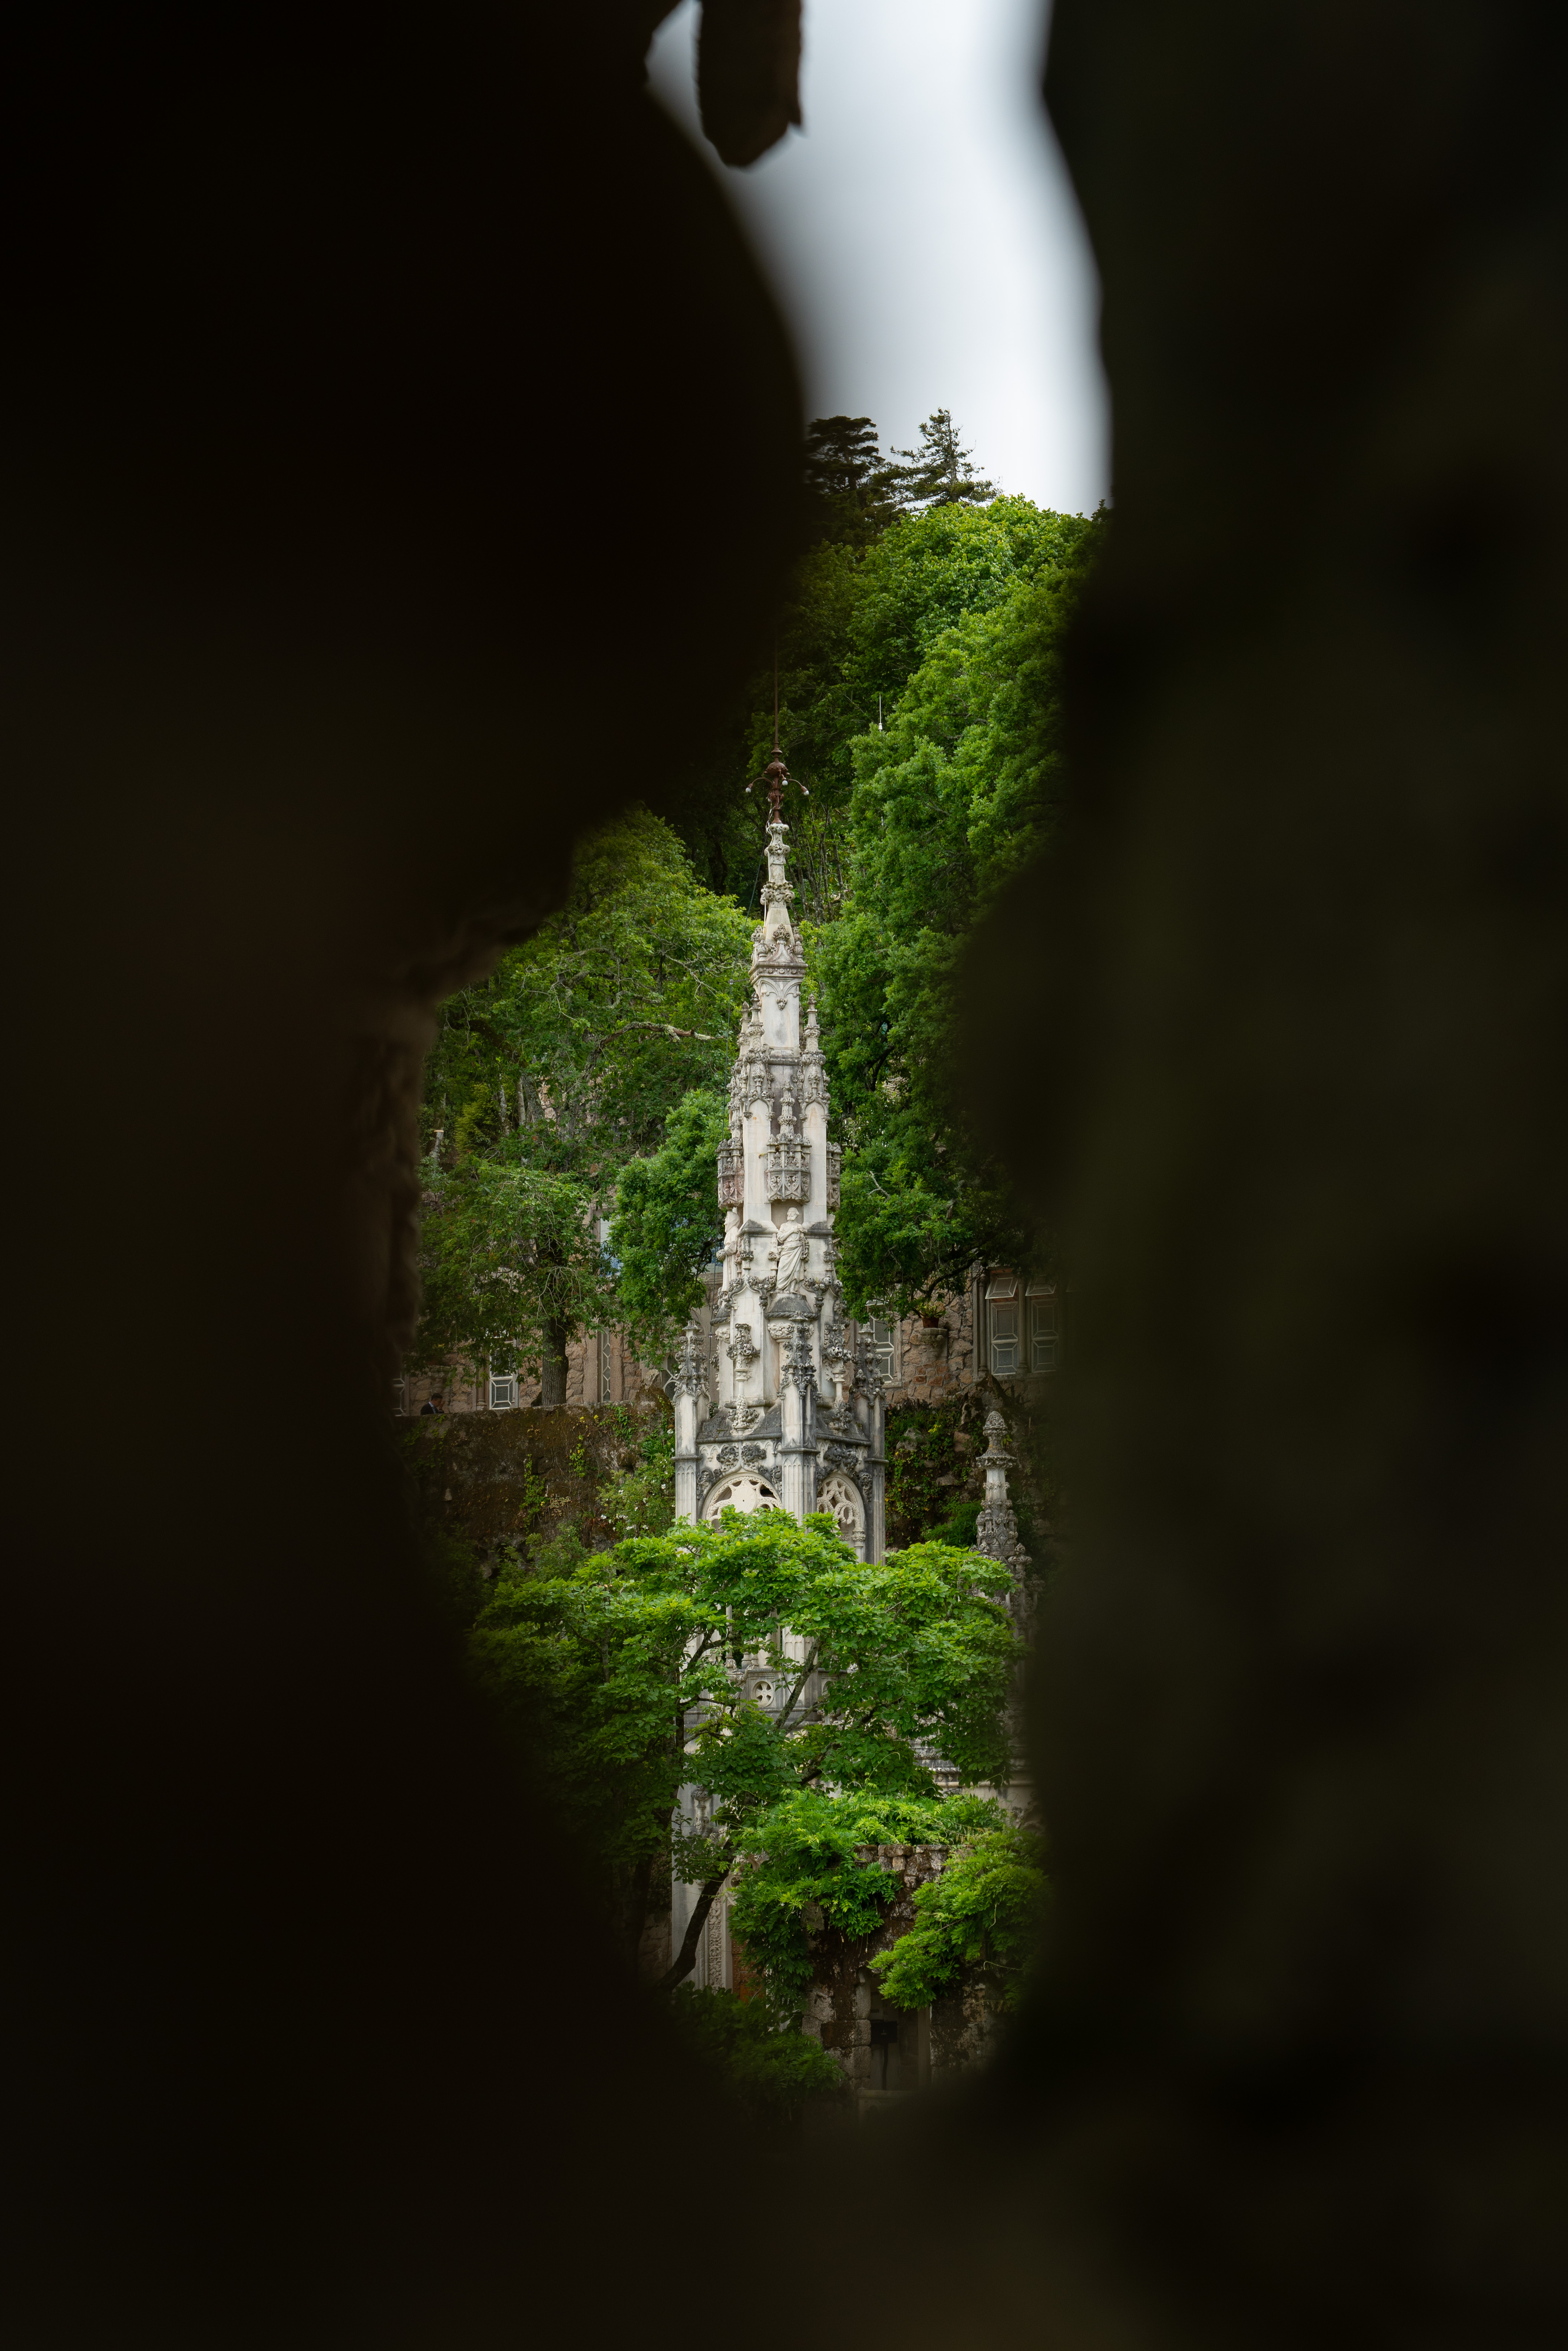 A spire at Quinta da Regaleira in Sintra, viewed through a gap between other stone carvings. The grounds mix forest, garden, and architecture seamlessly.